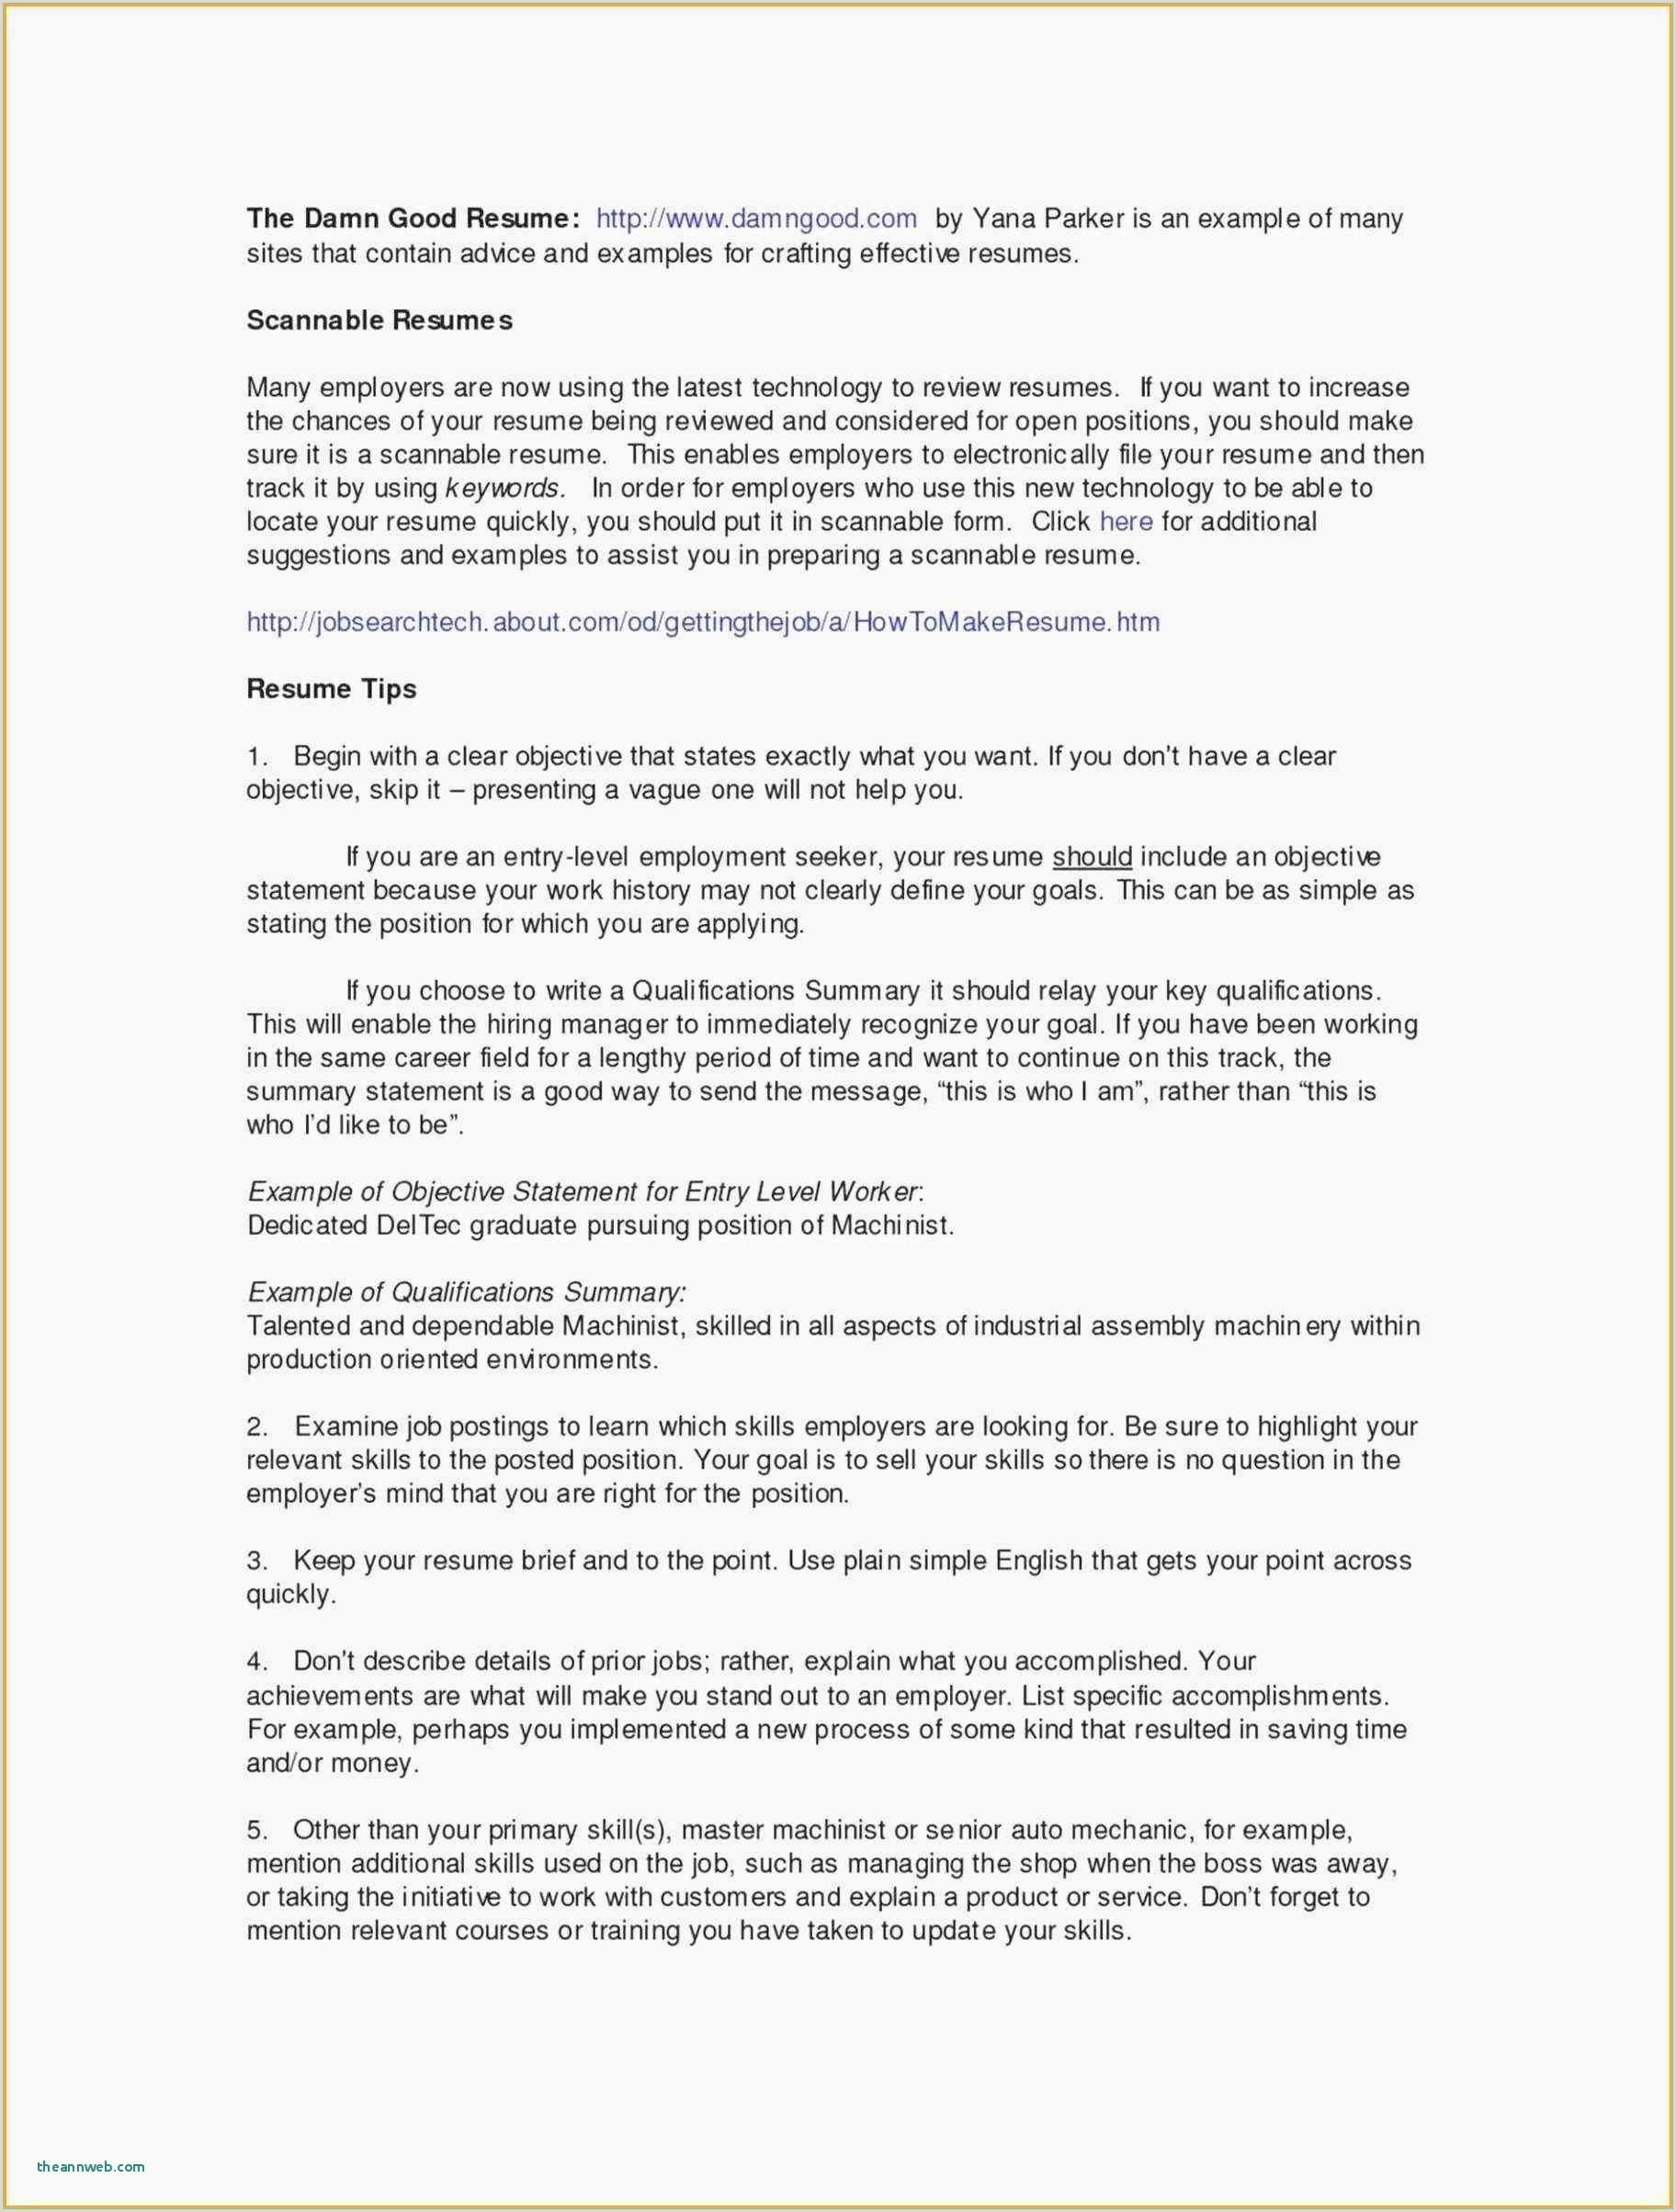 Executive assistant Cover Letter 2017 Template Executive assistant Cover Letter 2017